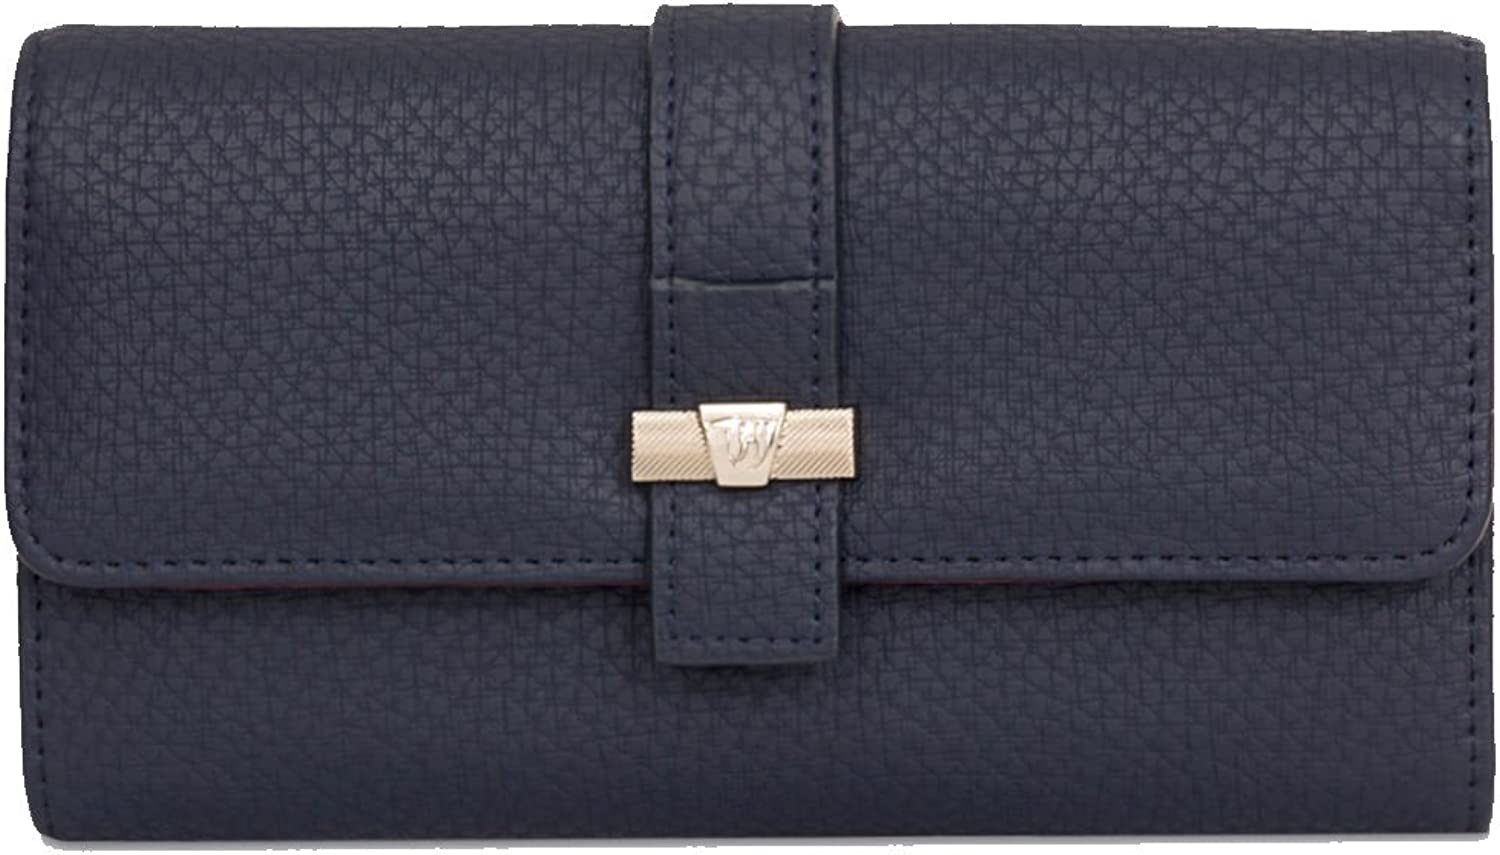 Trussardi Jeans New Women's Wallet ecoLeather Suzanne Smooth Navy bluee